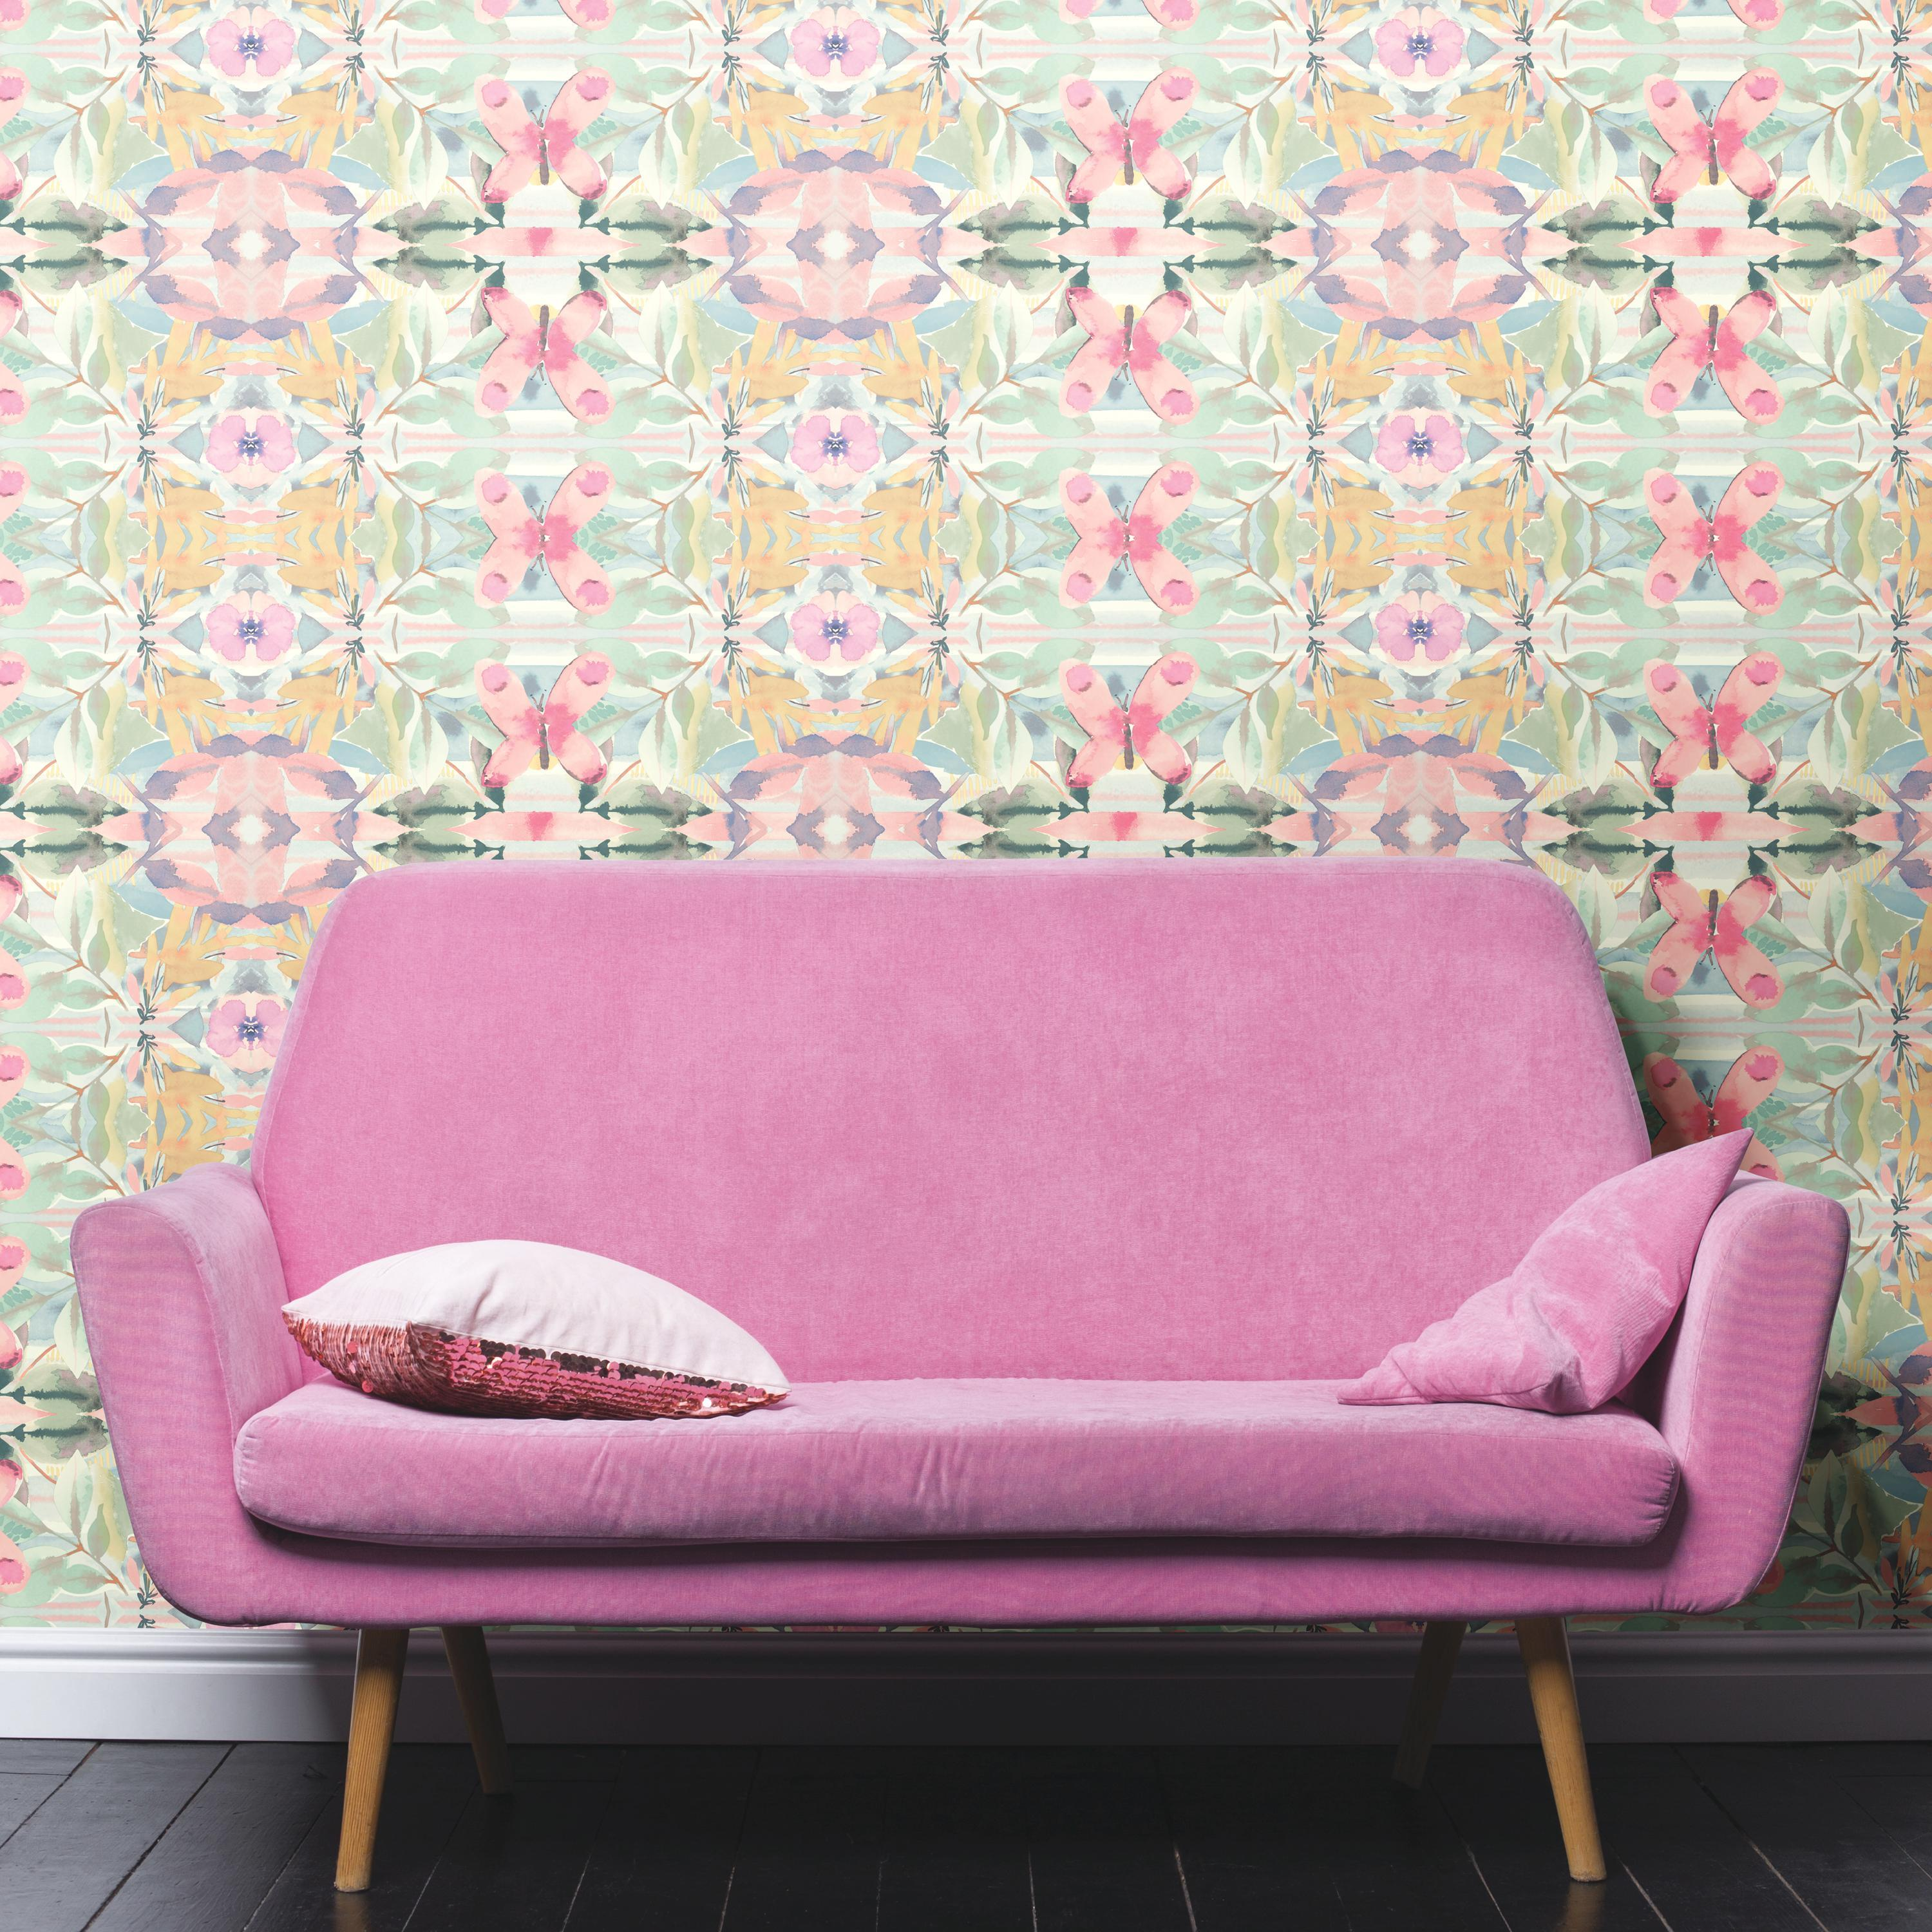 RoomMates Synchronized Floral Pink Peel & Stick Wallpaper